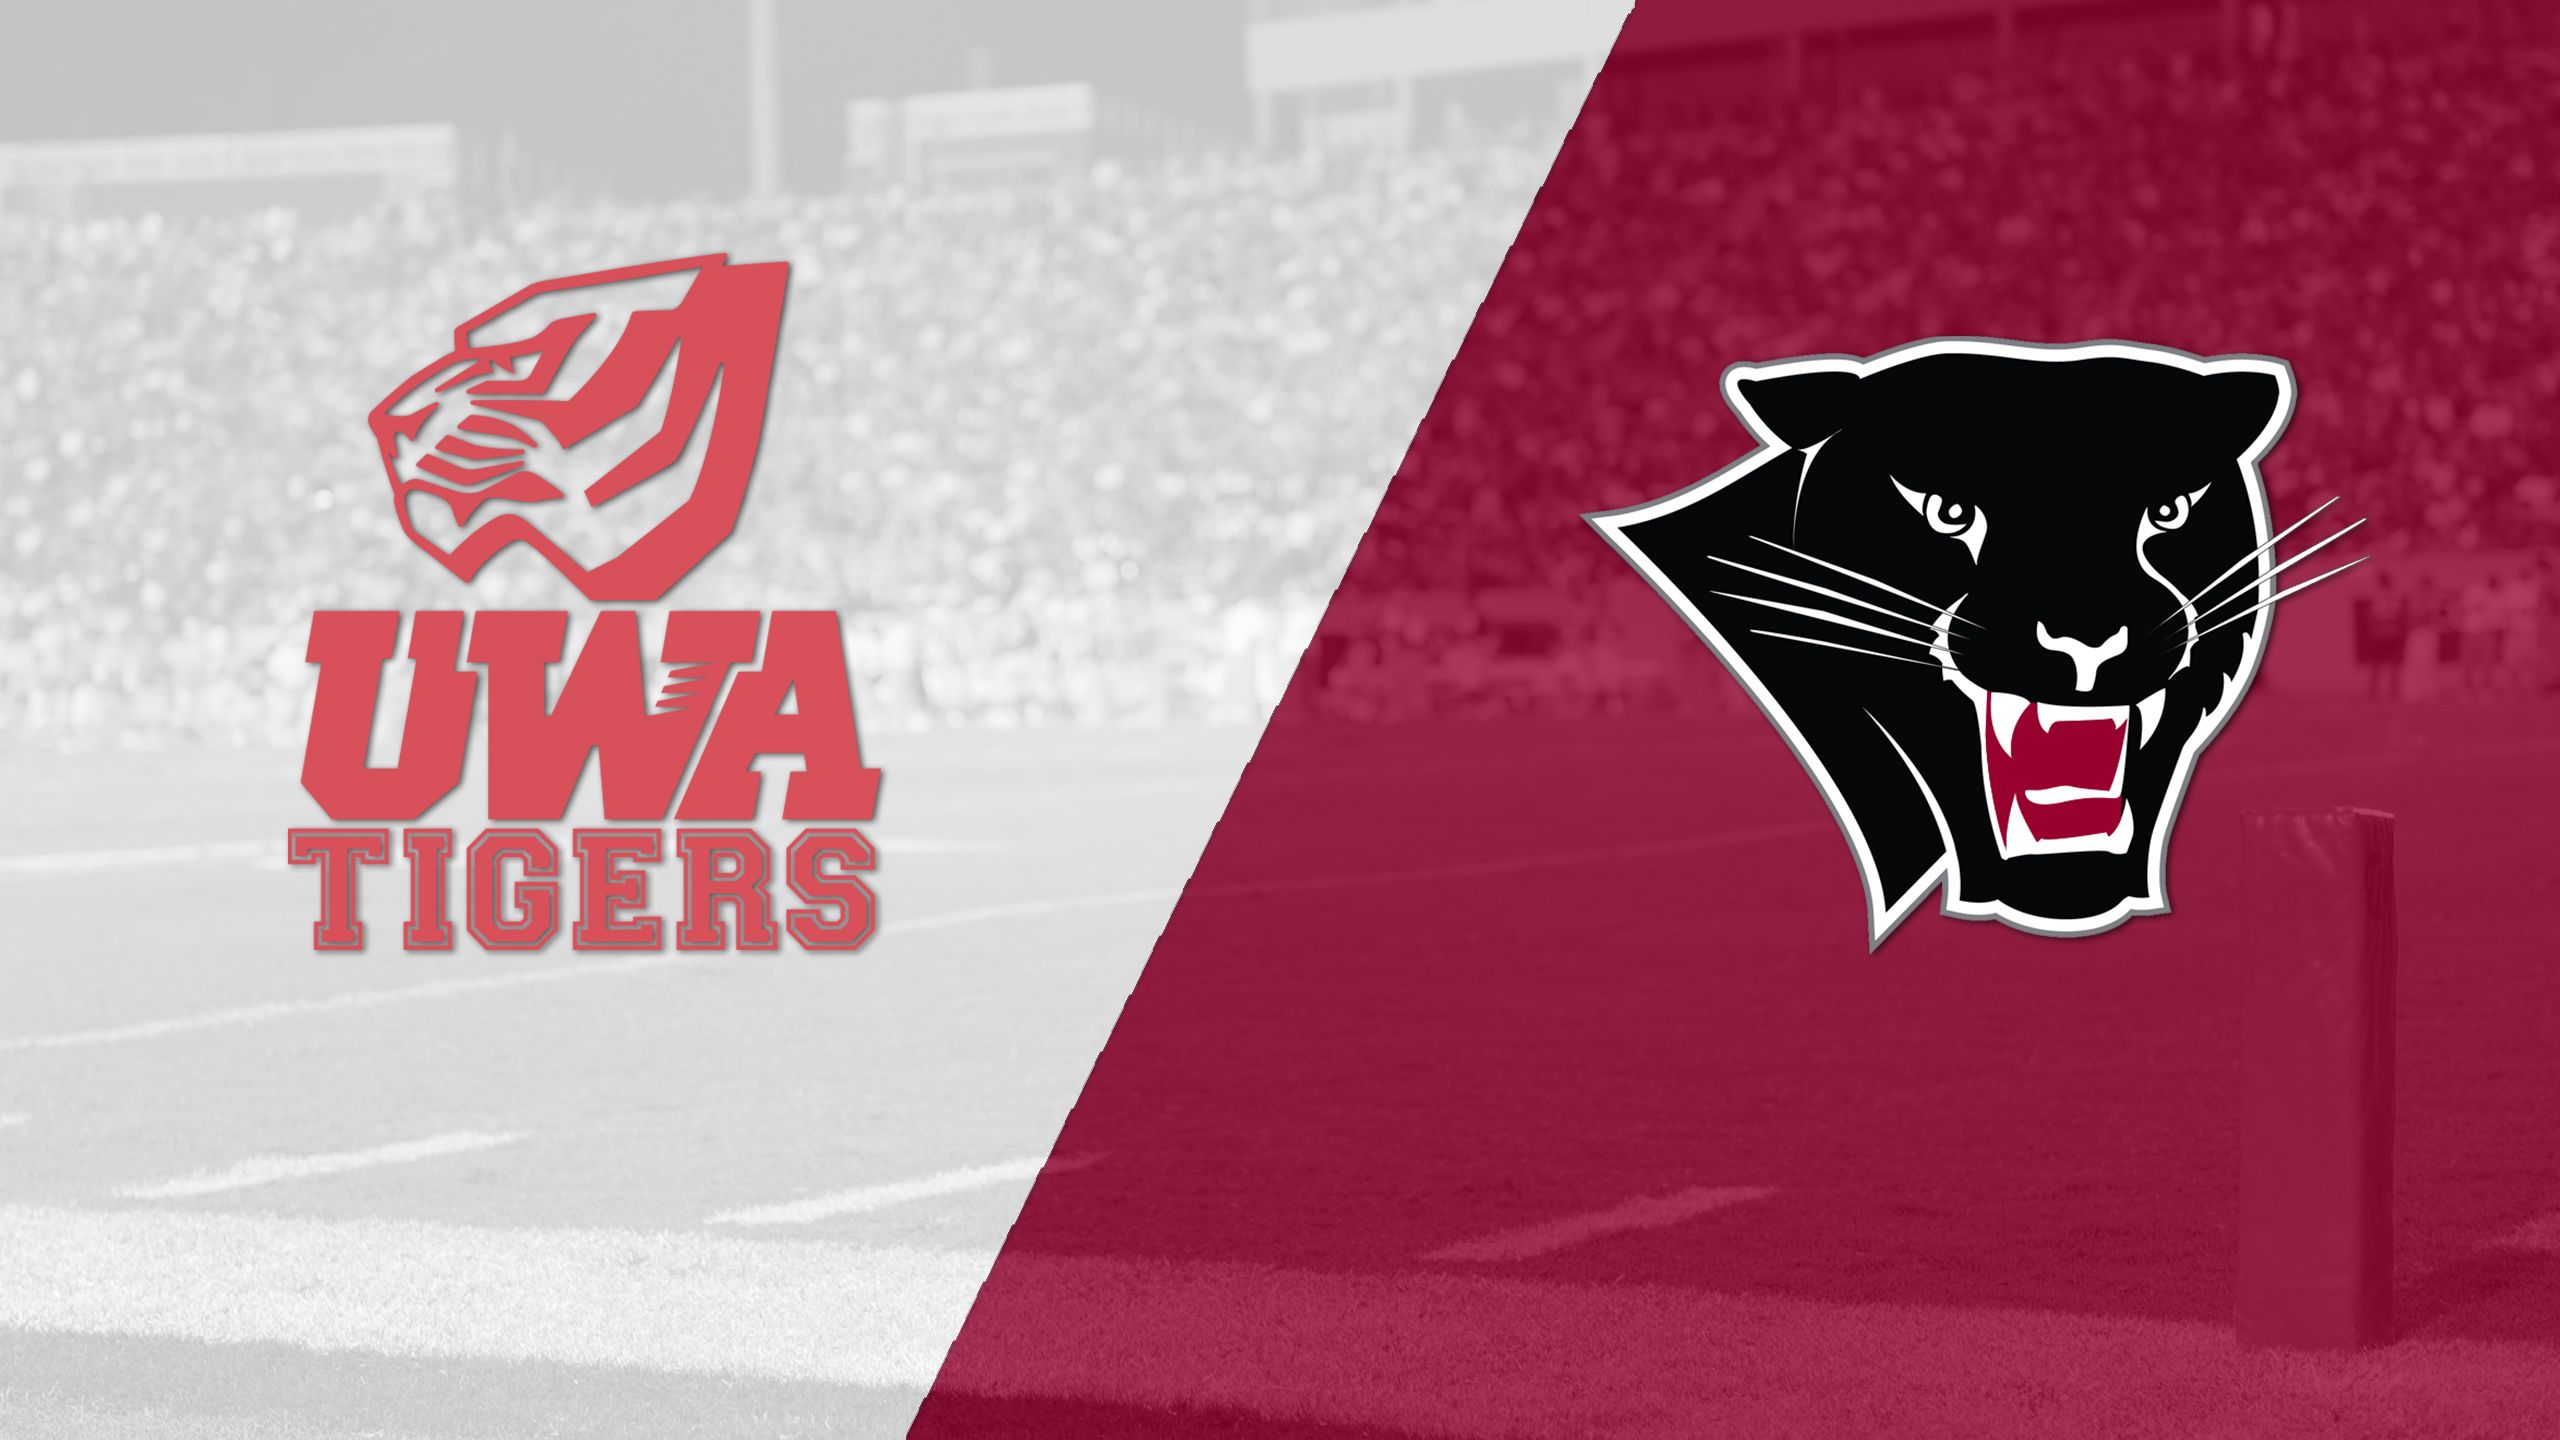 West Alabama vs. Florida Tech (Football)